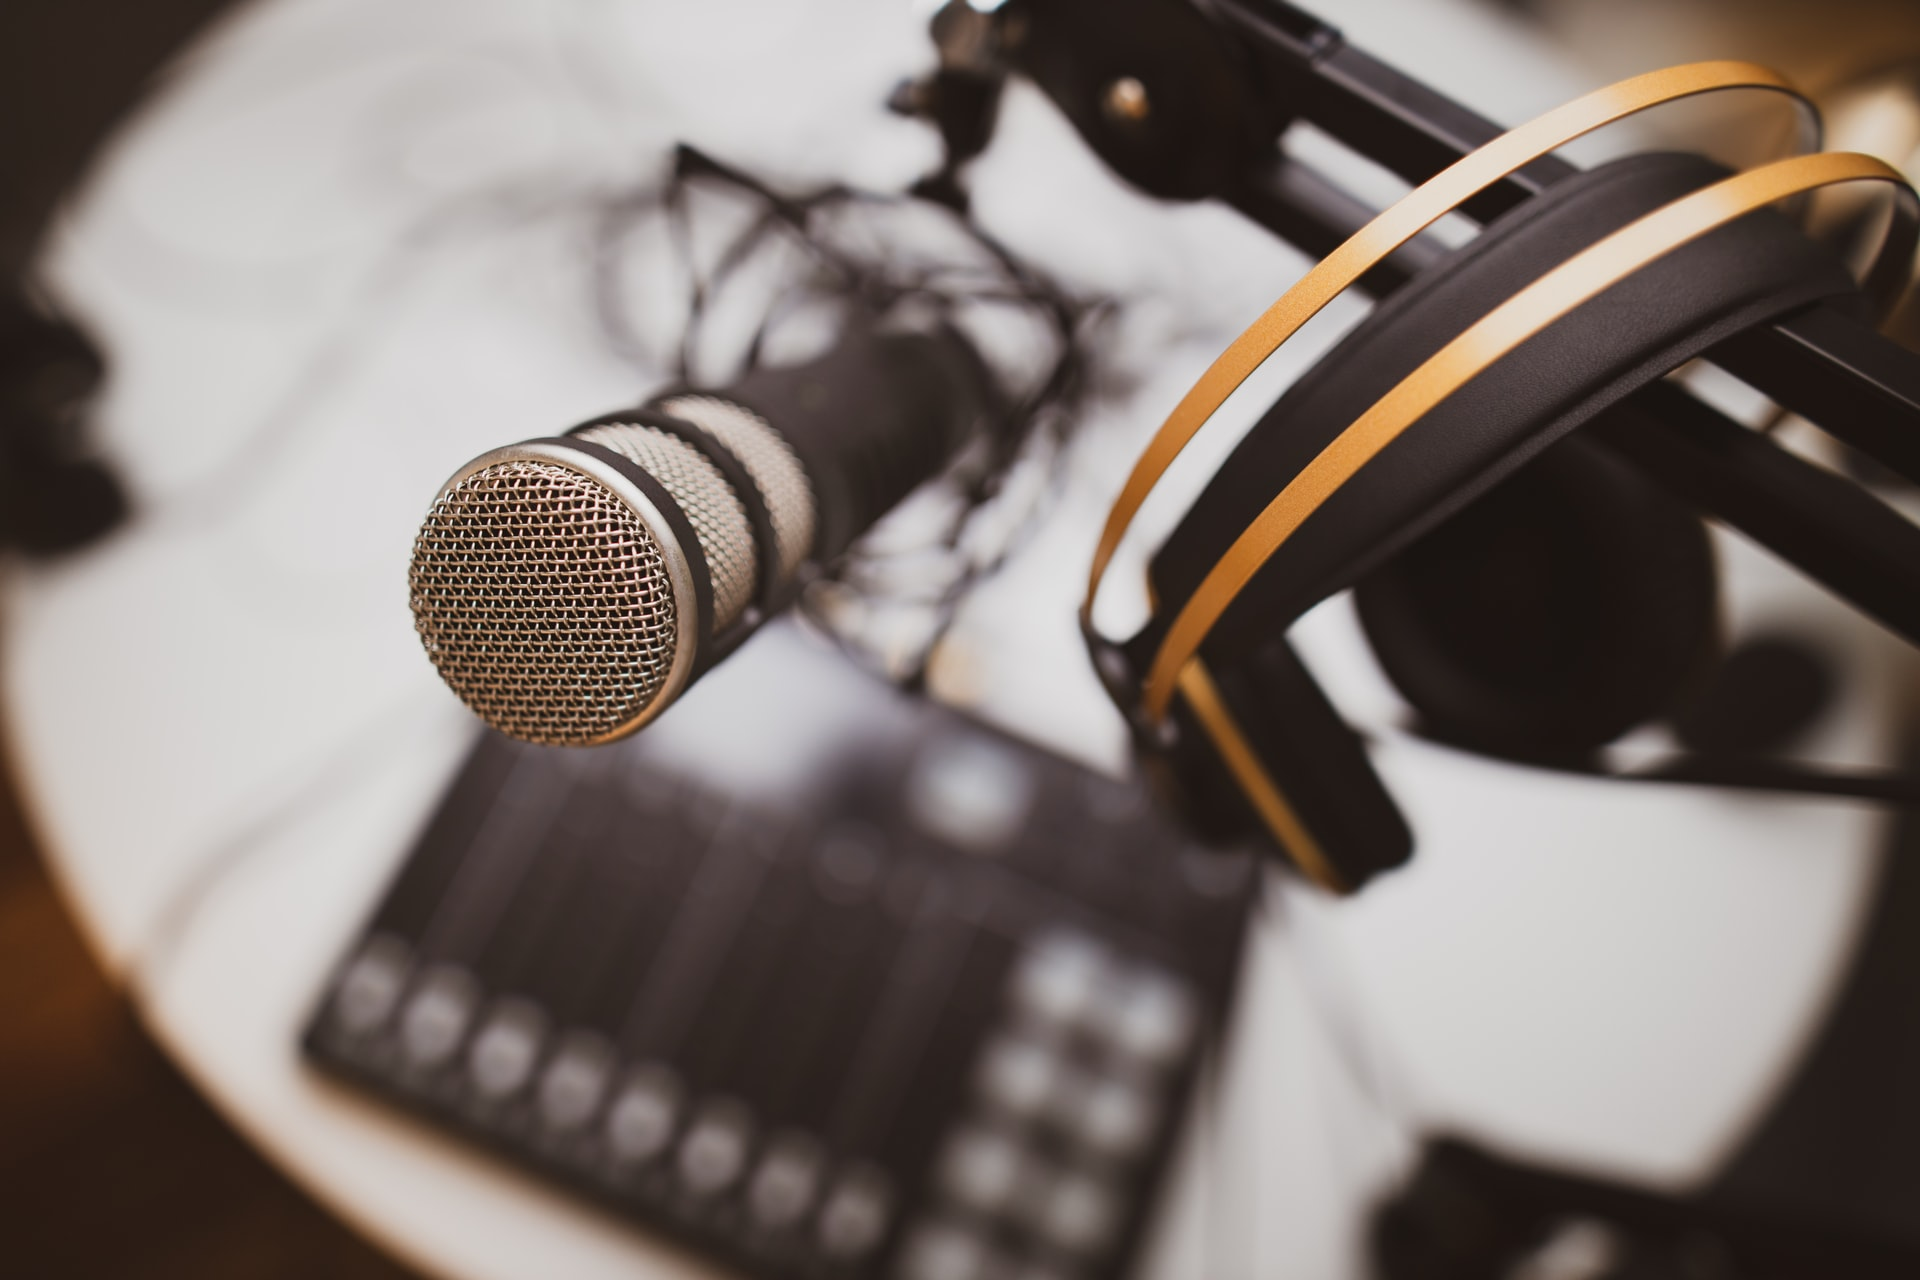 Upgrade your mindset with these podcasts